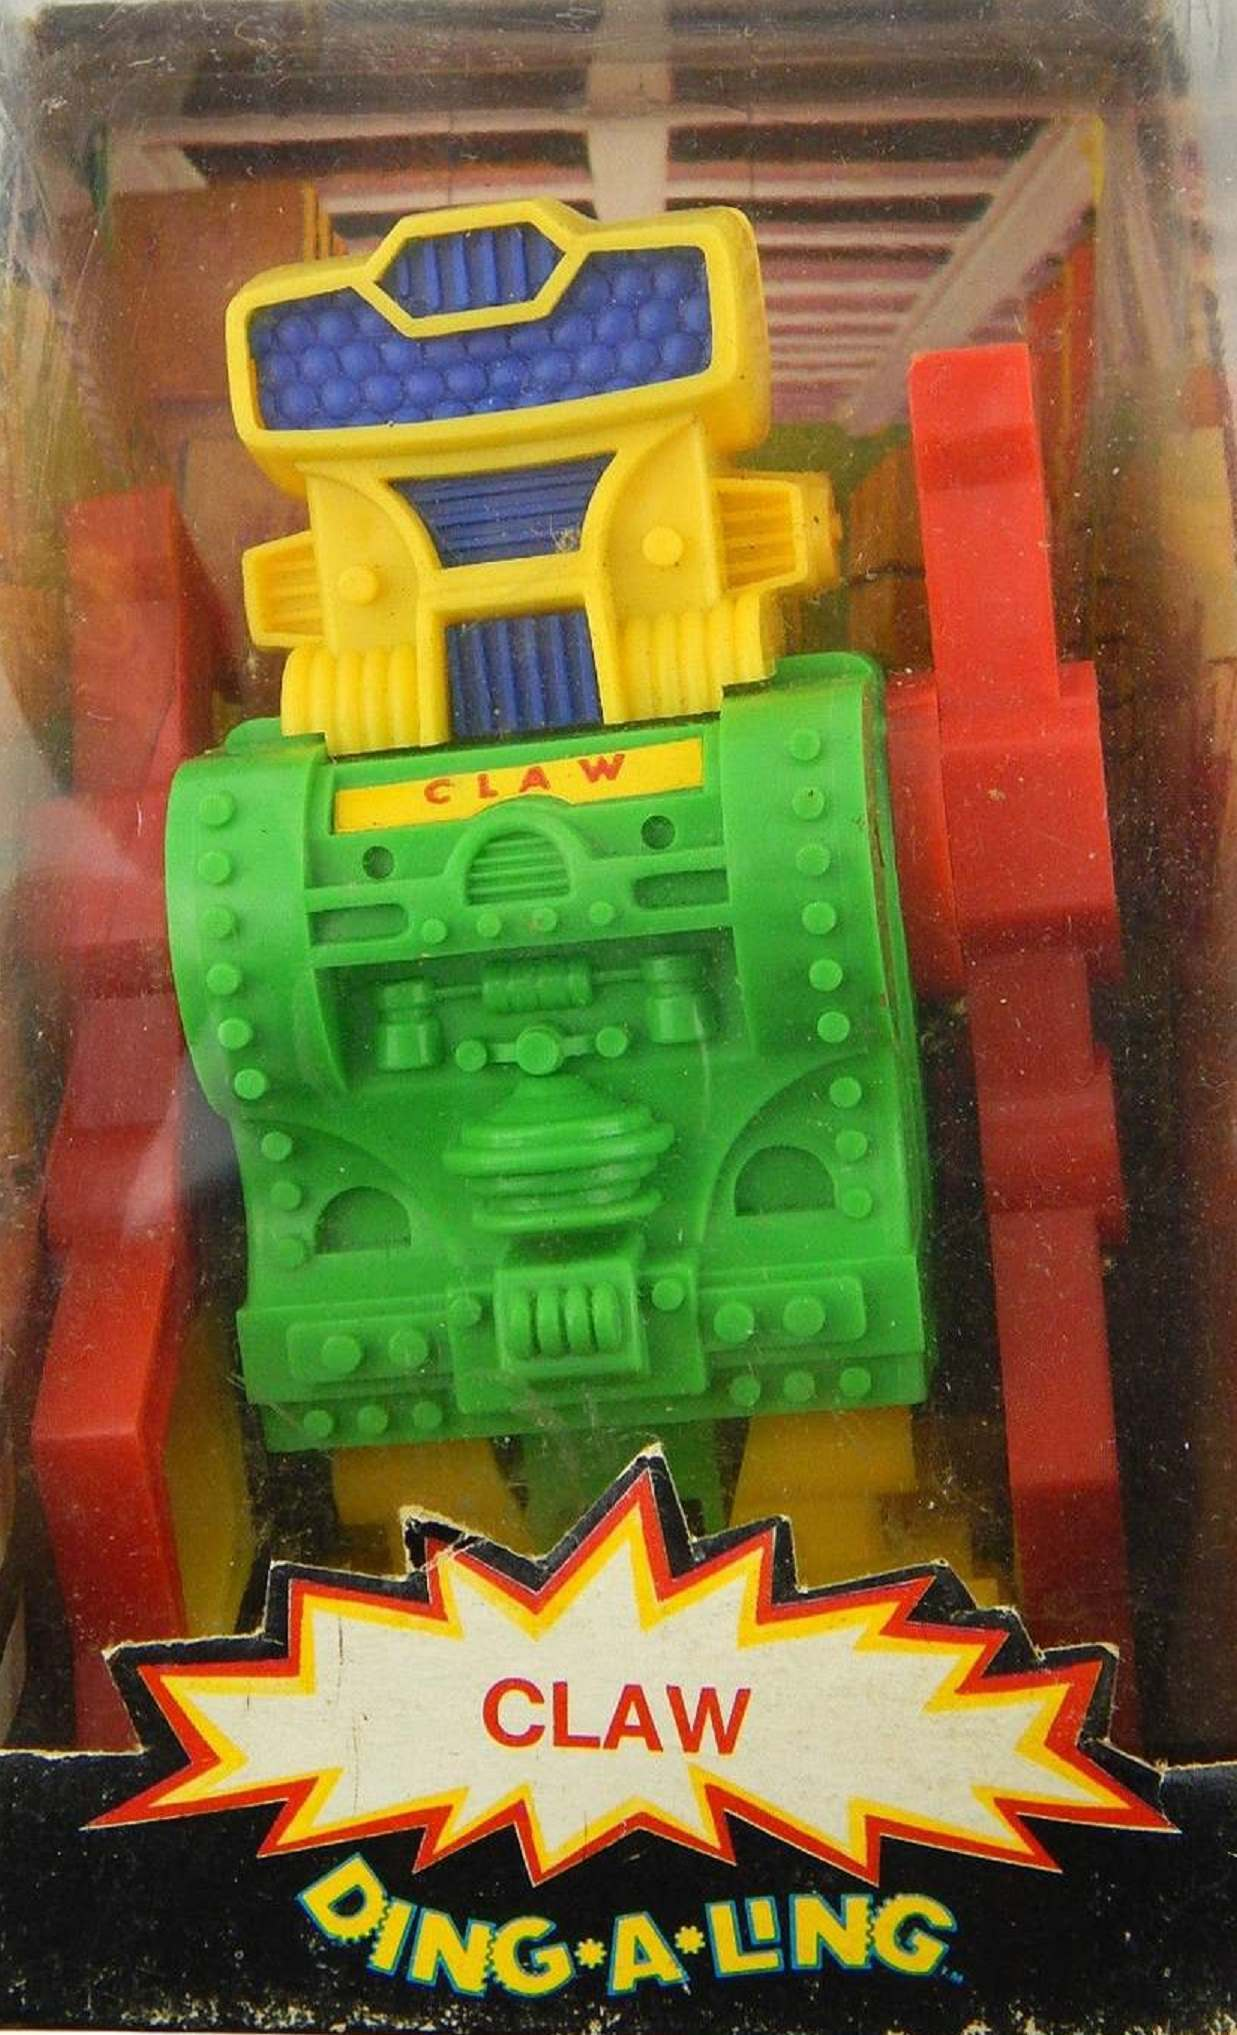 Battery Operated Ride On Toys >> Robot Empire: Remembering Topper's Ding-A-Ling Robots of the 1970s